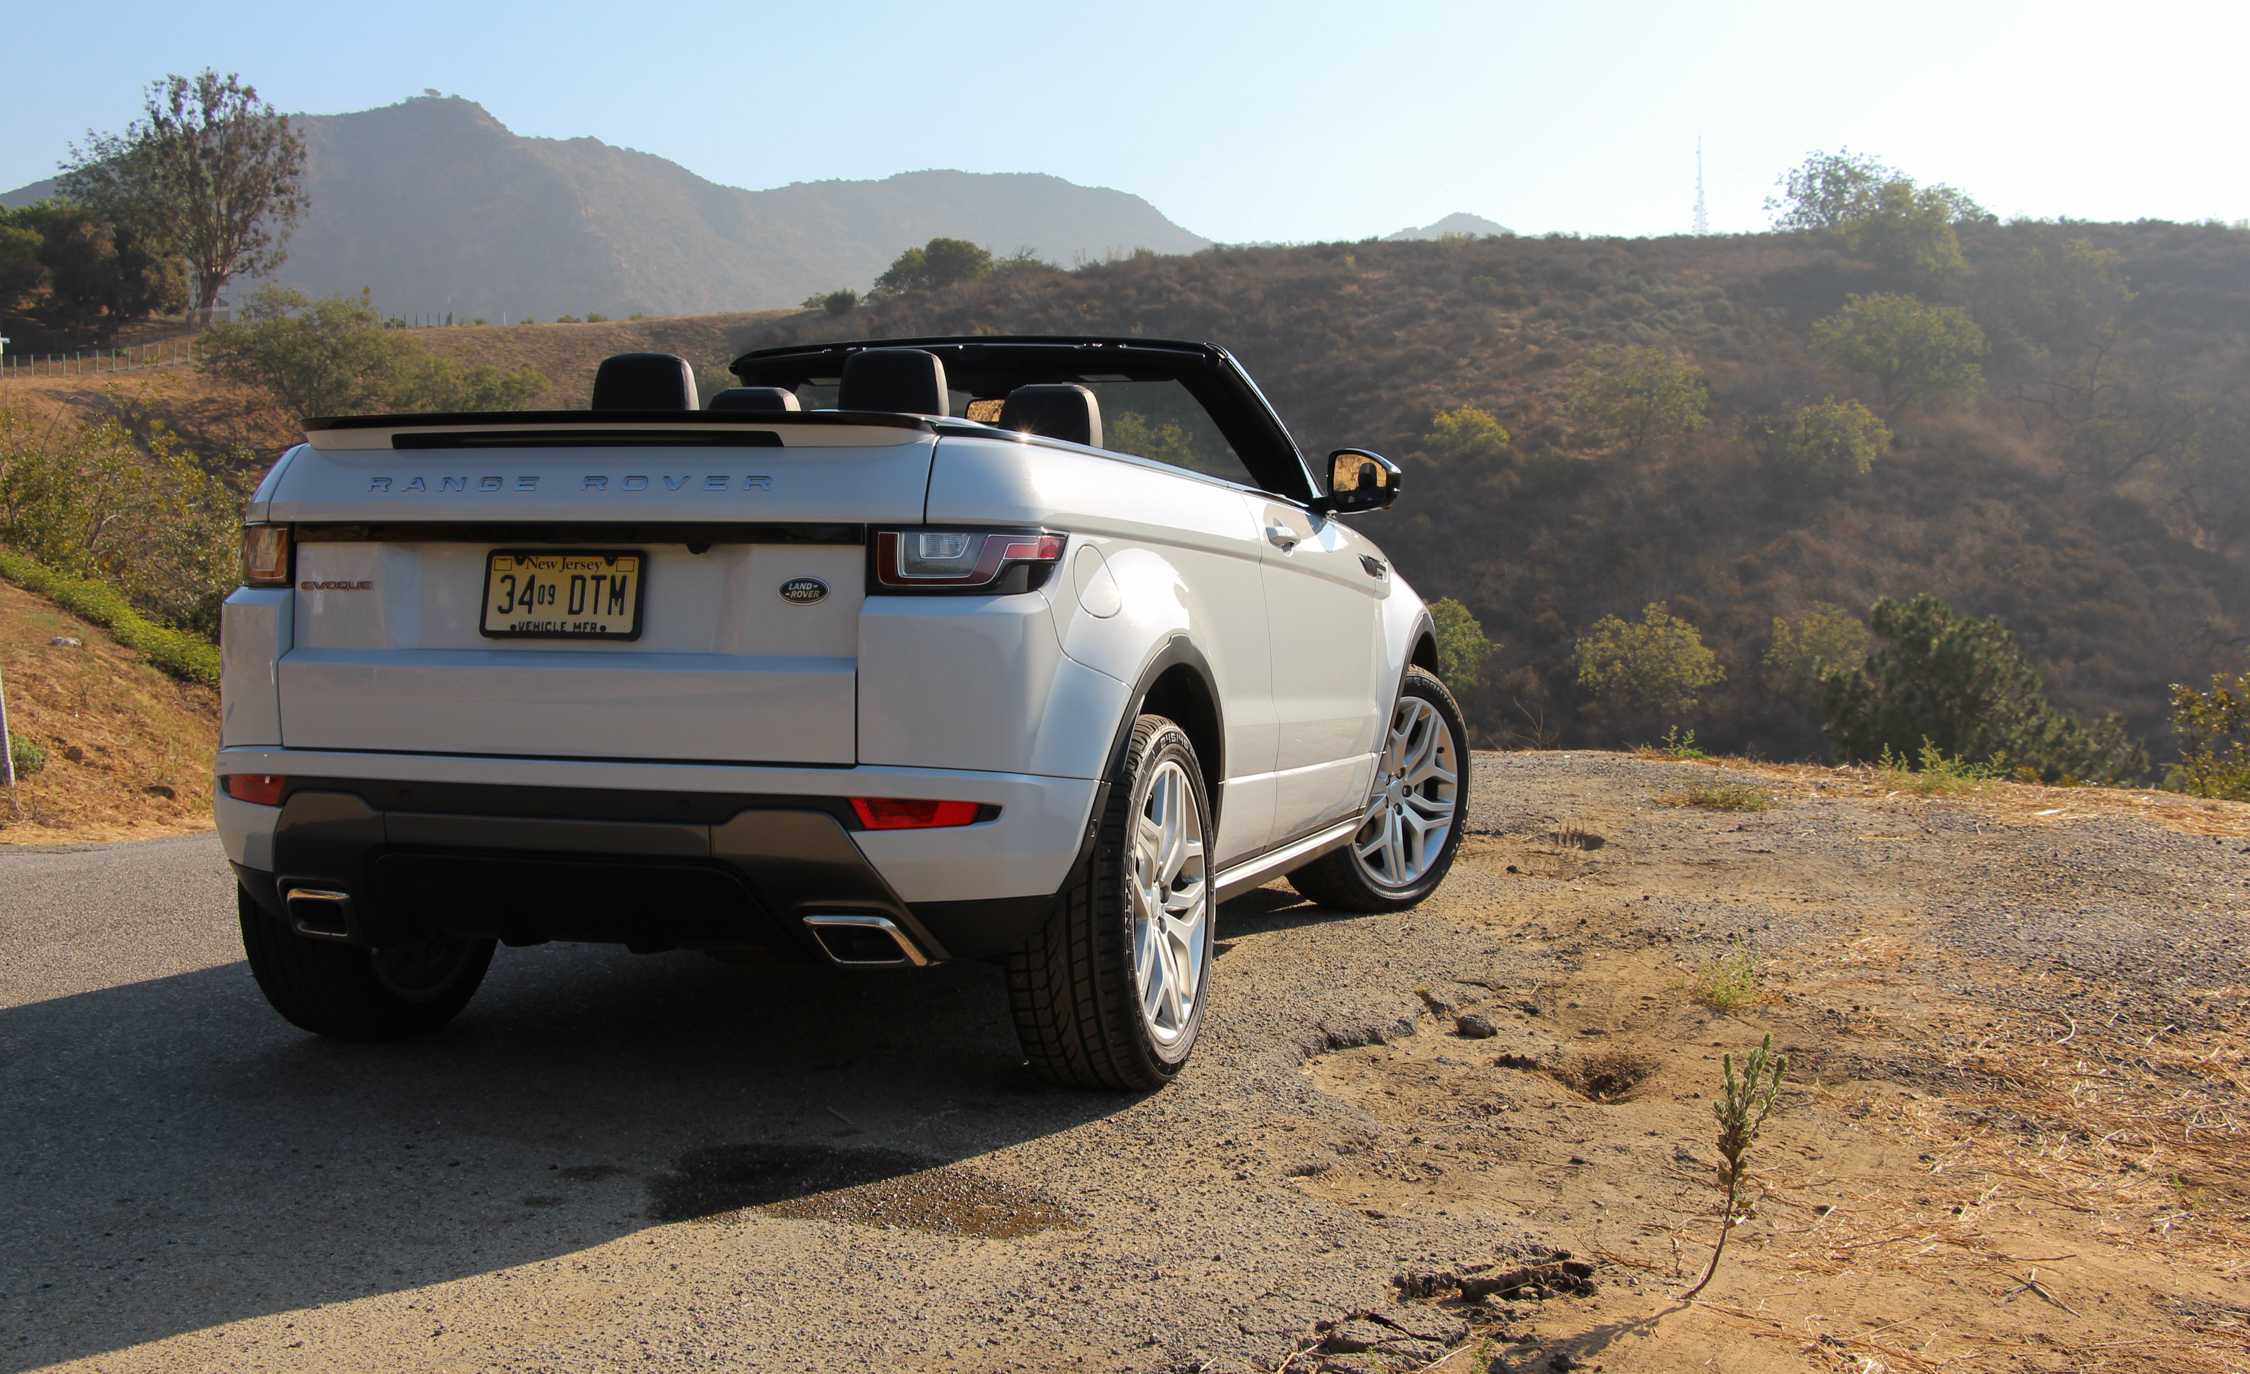 2017 Land Rover Range Rover Evoque Convertible Exterior Open Roof Rear (Photo 6 of 14)